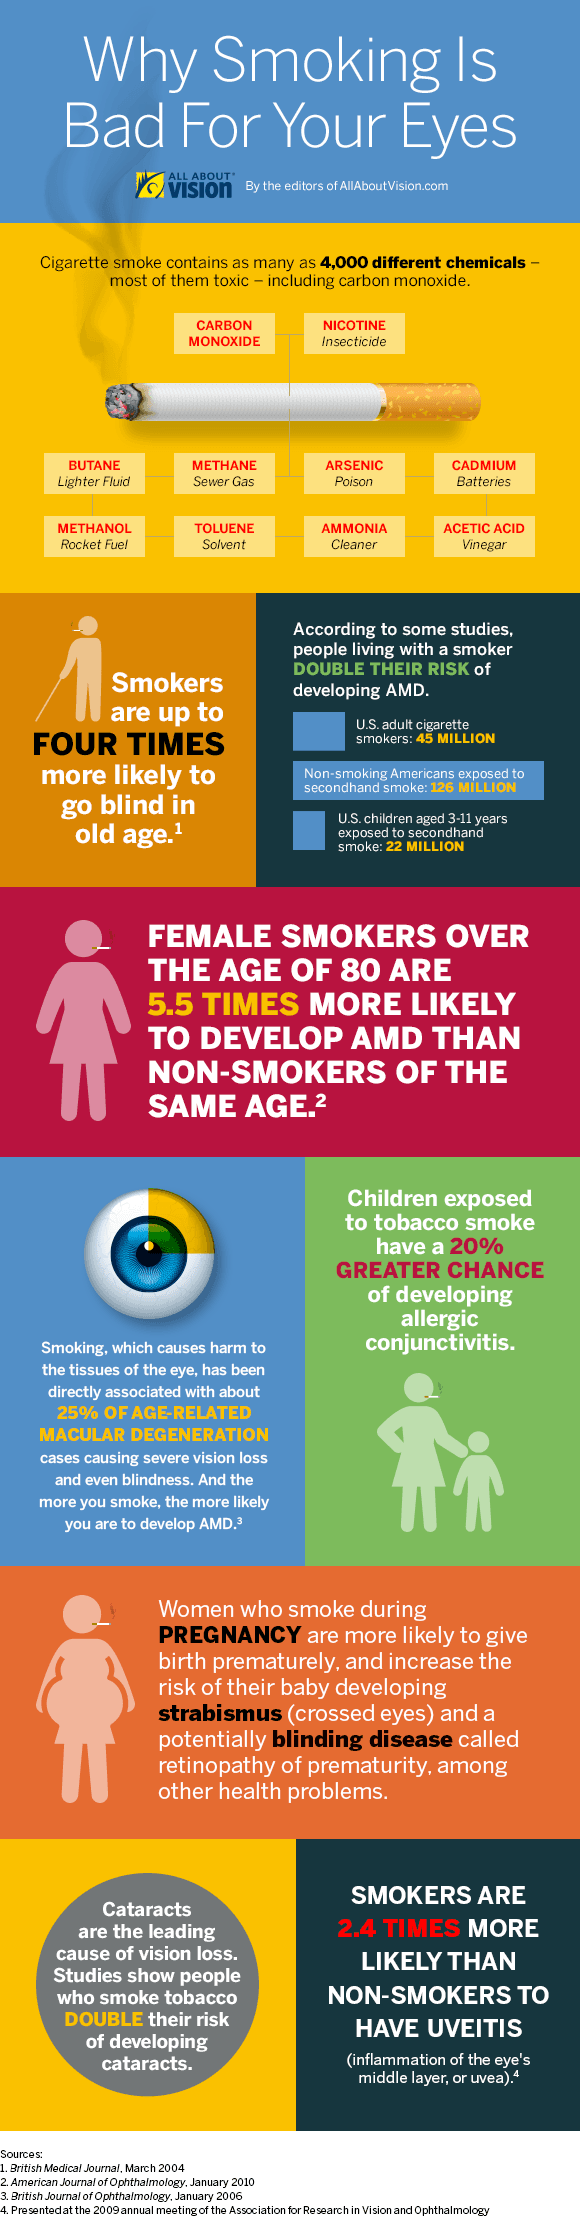 Infographic about smoking